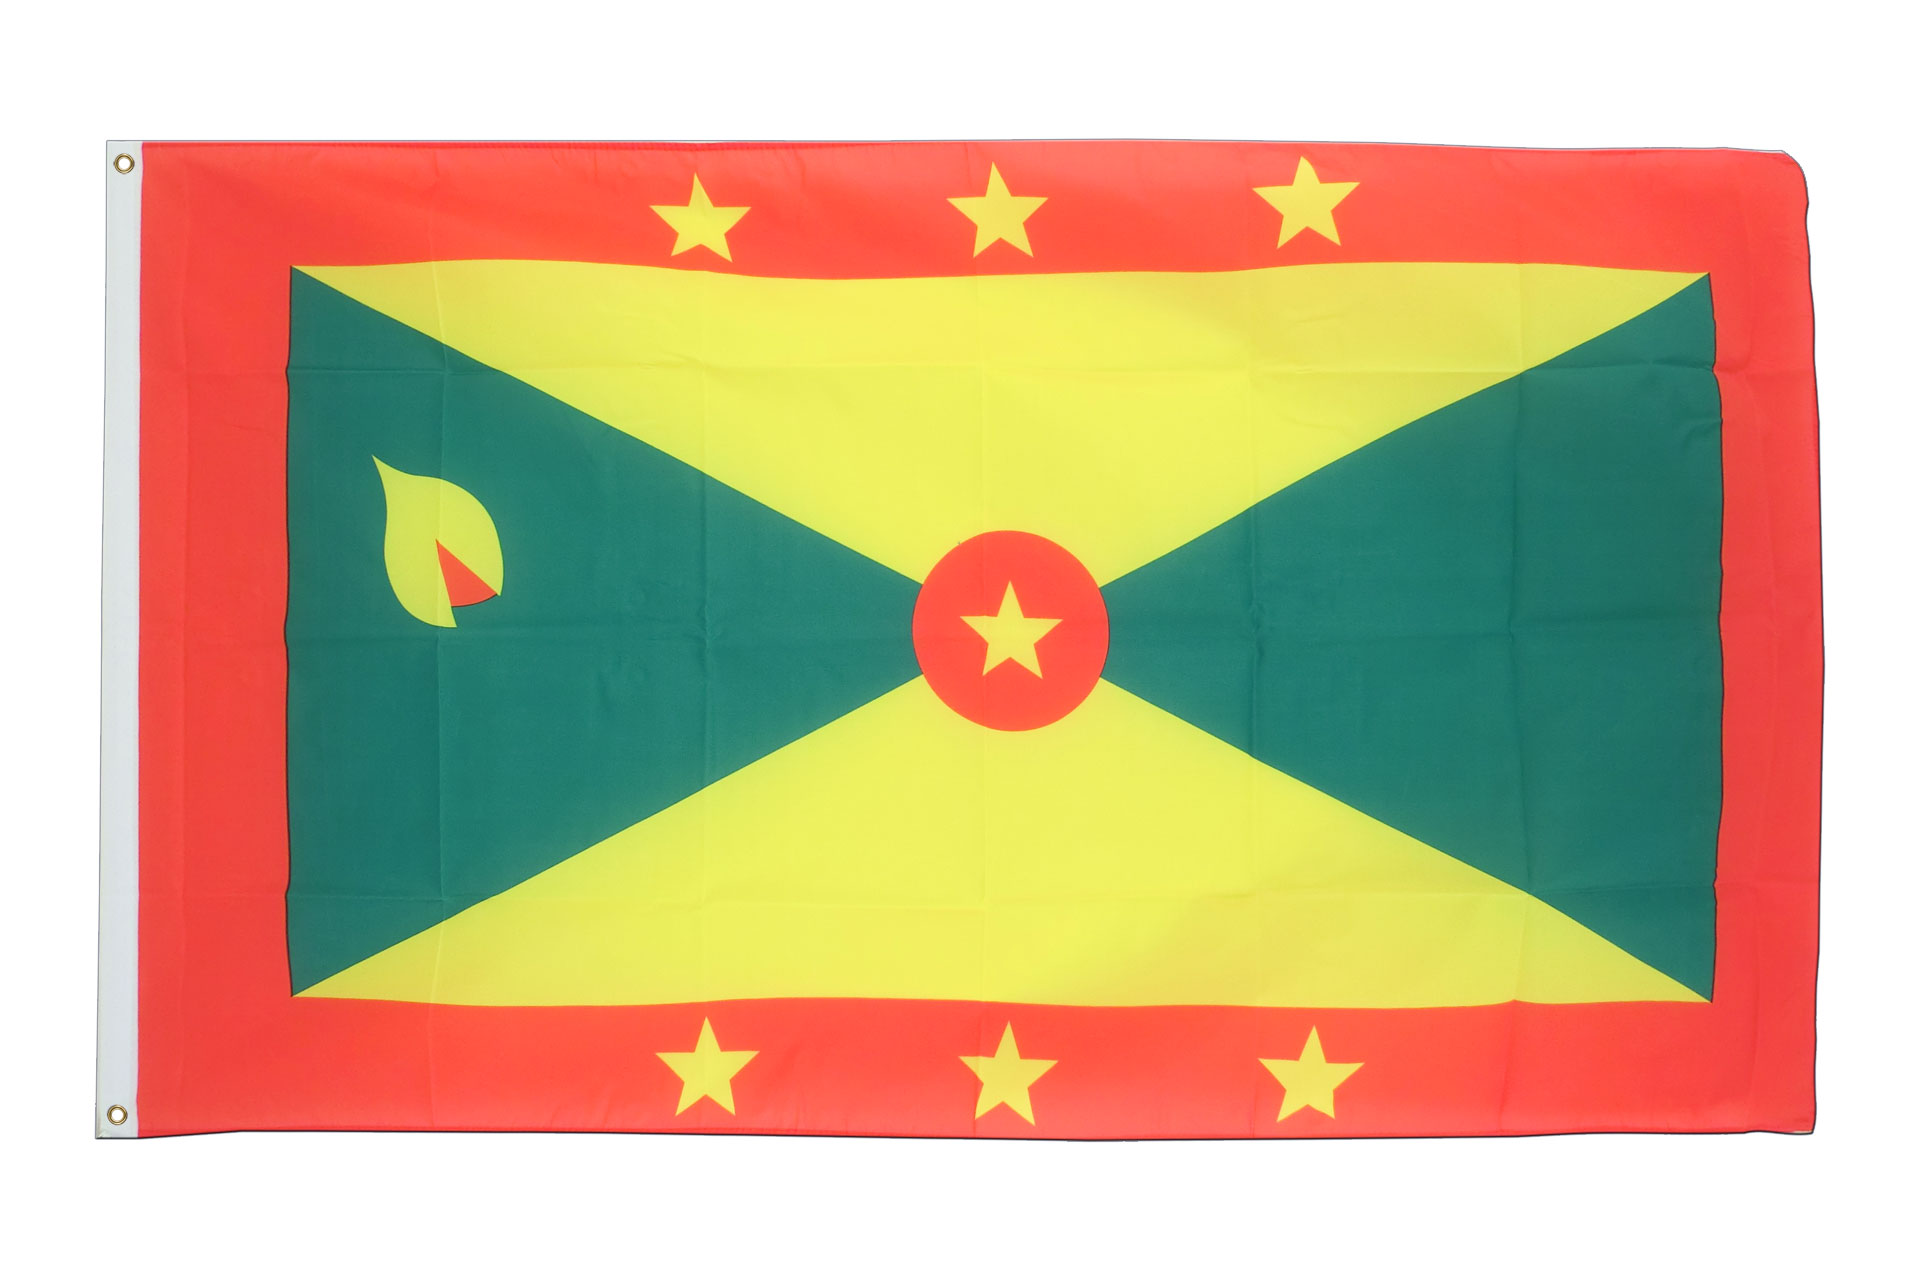 Buy Grenada Flag - 3x5 ft (90x150 cm) - Royal-Flags: royal-flags.co.uk/grenada-flag-1662.html